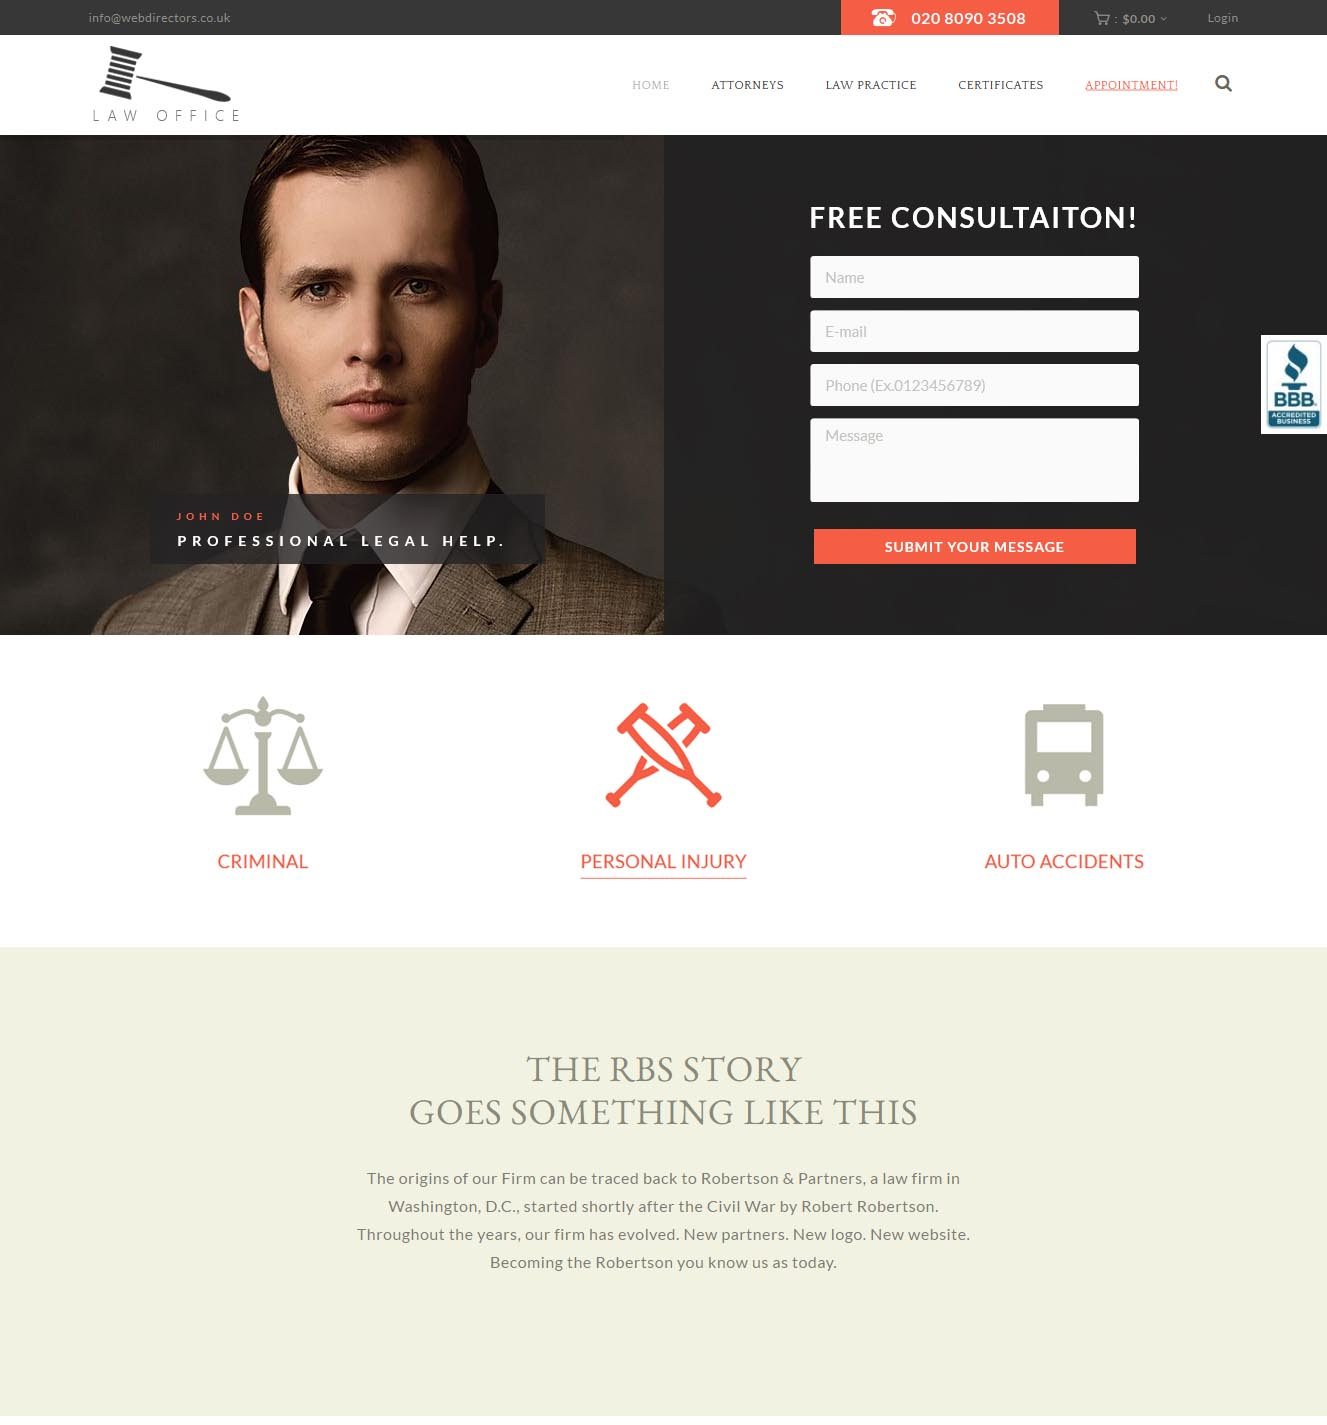 001 - Lawyer (Landing Page Thumb)_